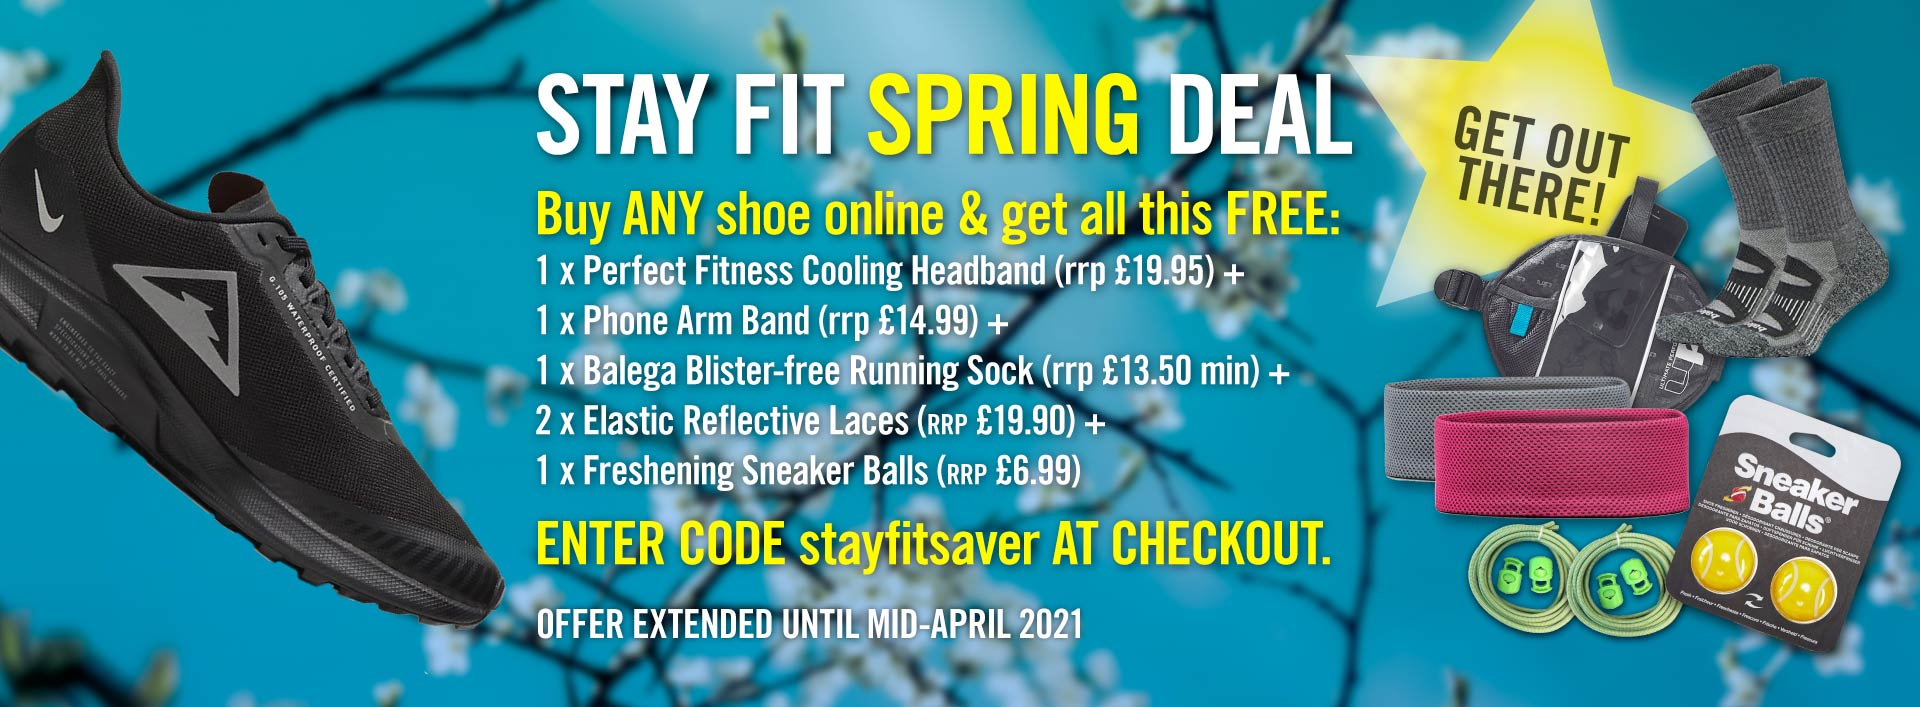 stayfitsaver offer - buy any shoe and get extras worth over 75GBP free